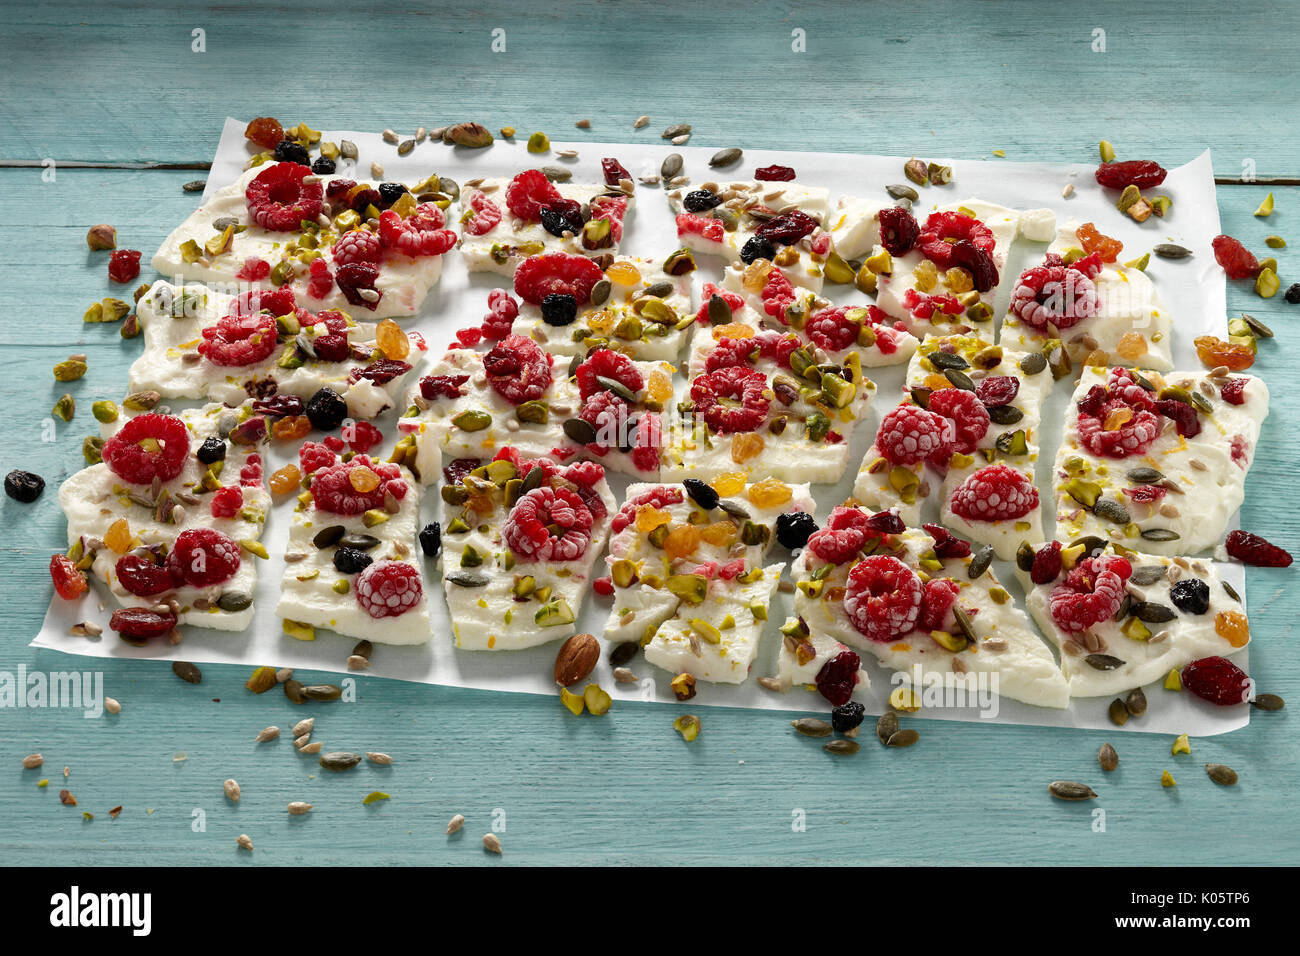 Frozen Greek yogurt bark - Stock Image